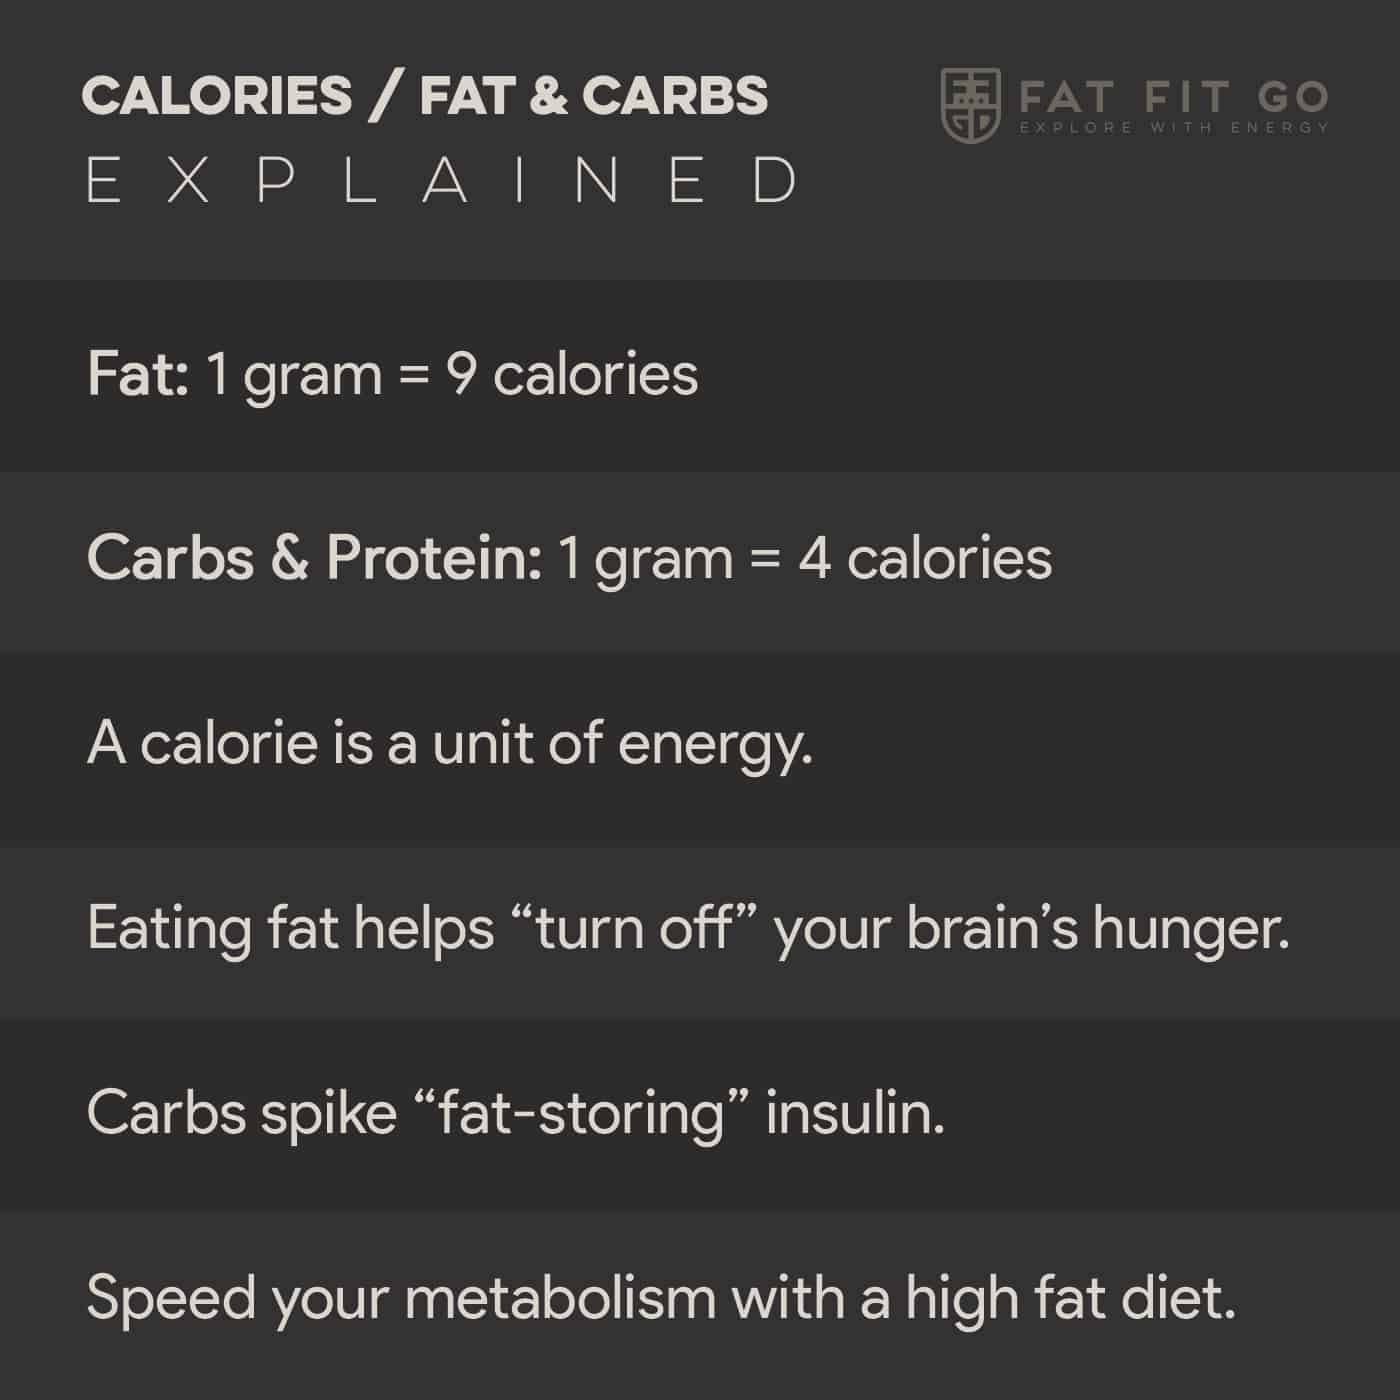 Fat and Calories Explained